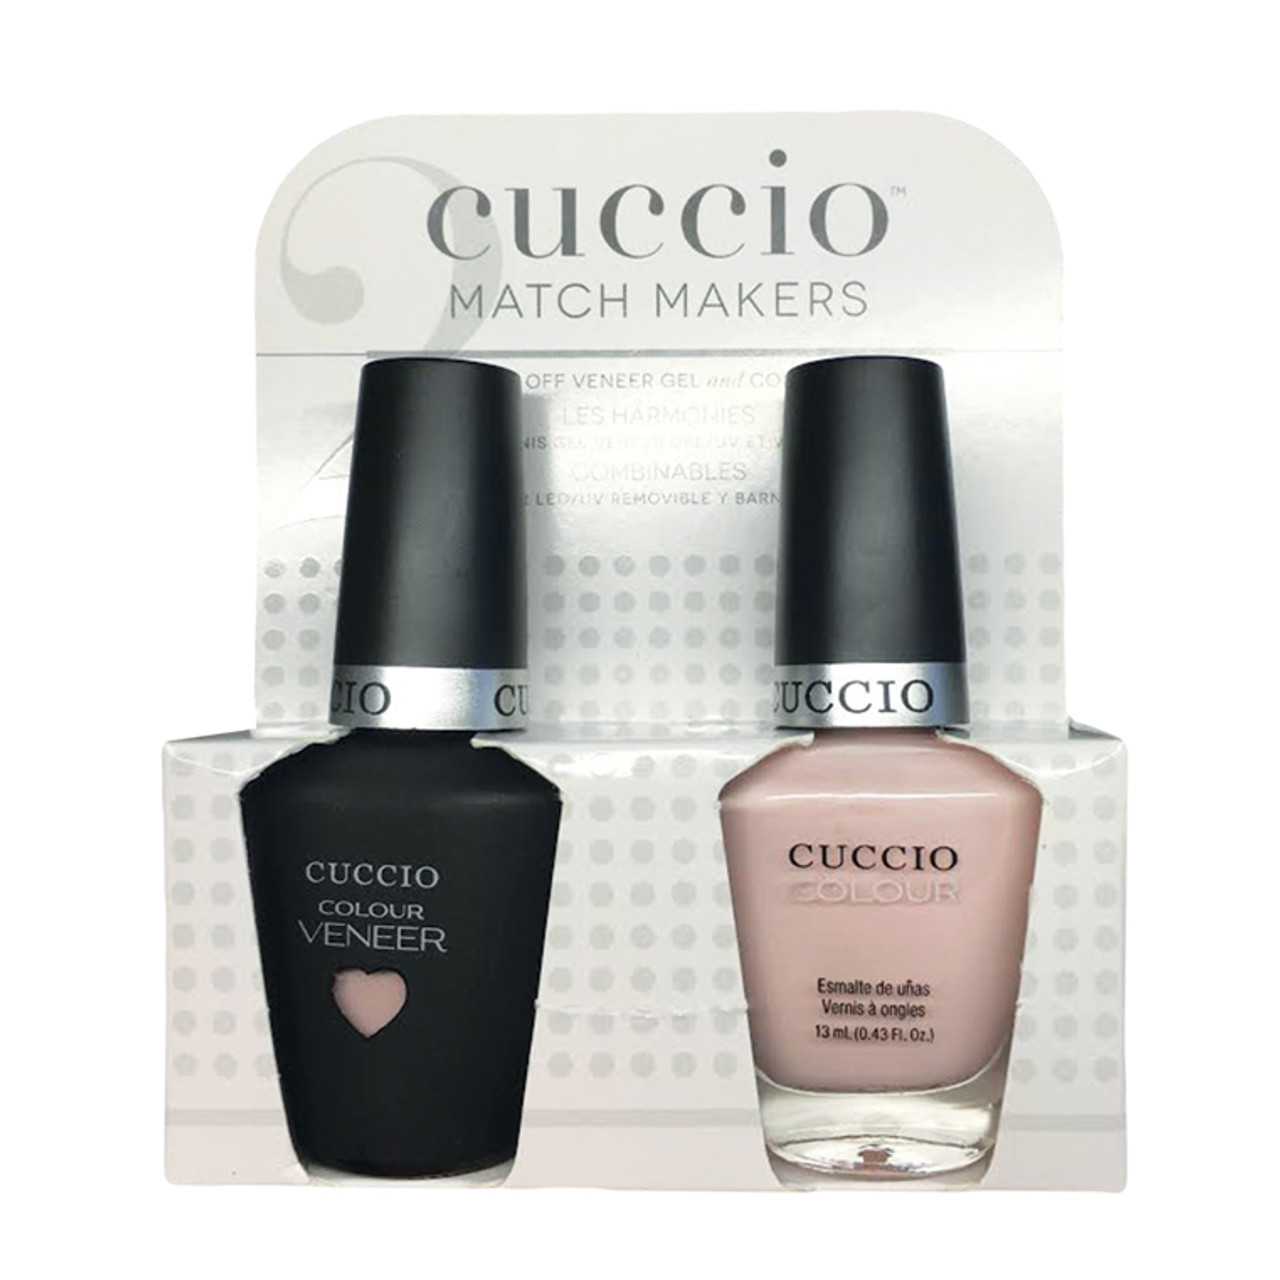 Cuccio Match Makers - #6401 Pink Champagne - Sweet Pink Collection ...